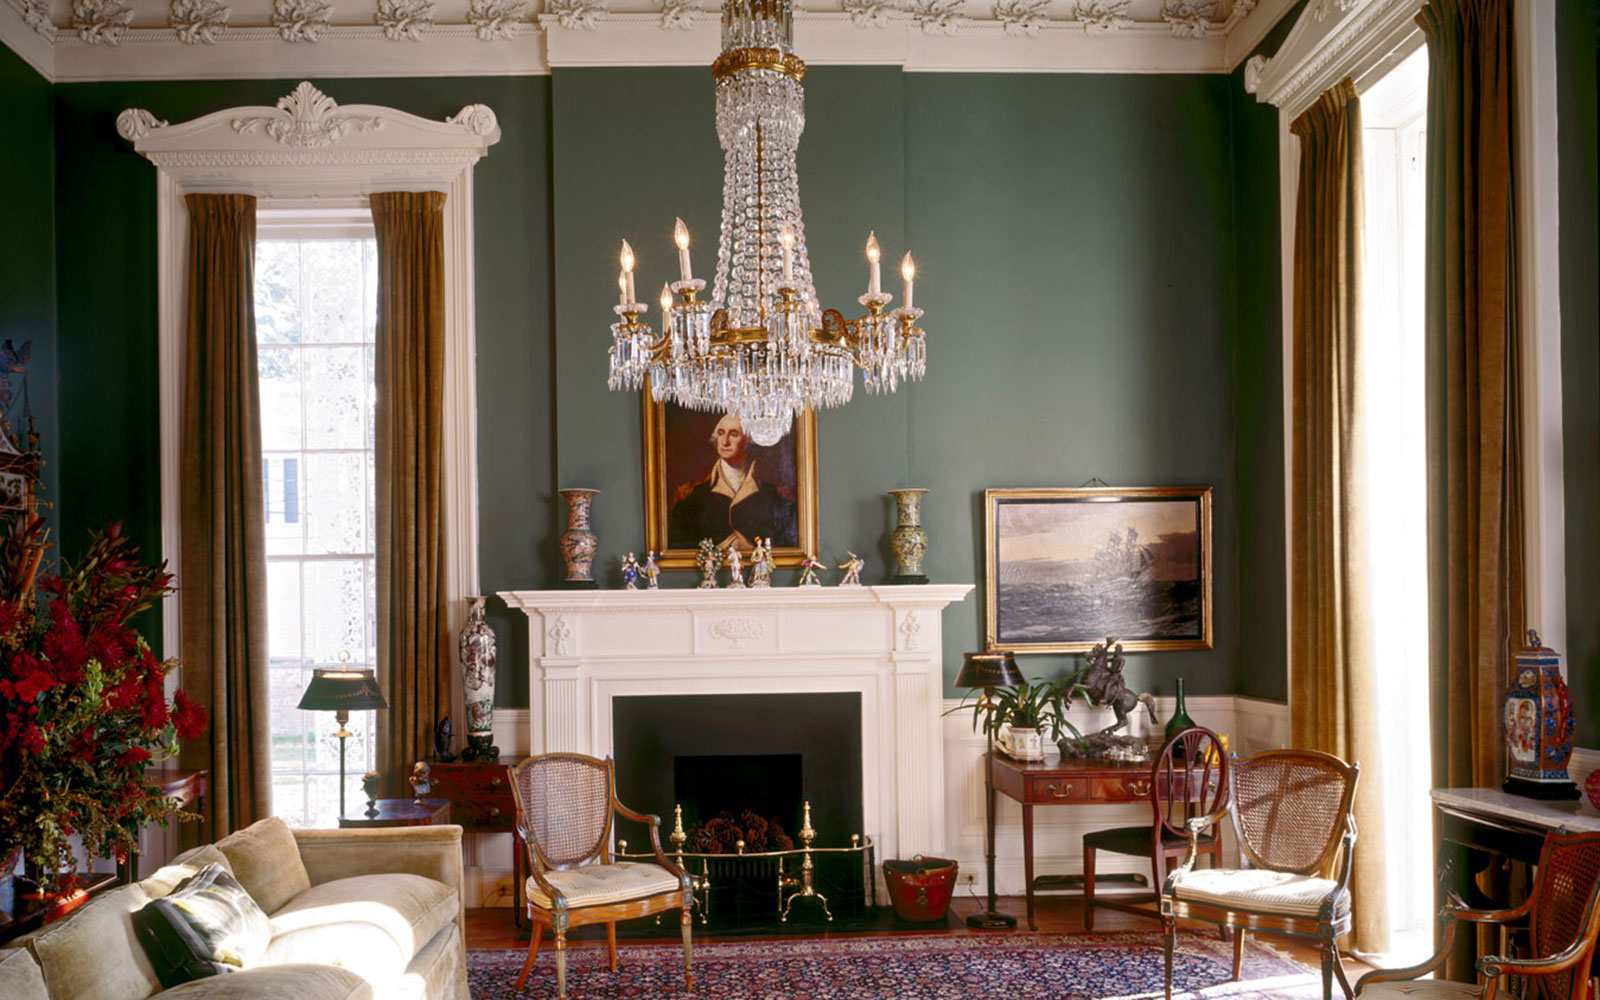 Reception Parlor at the Walter Grinnan Robinson House